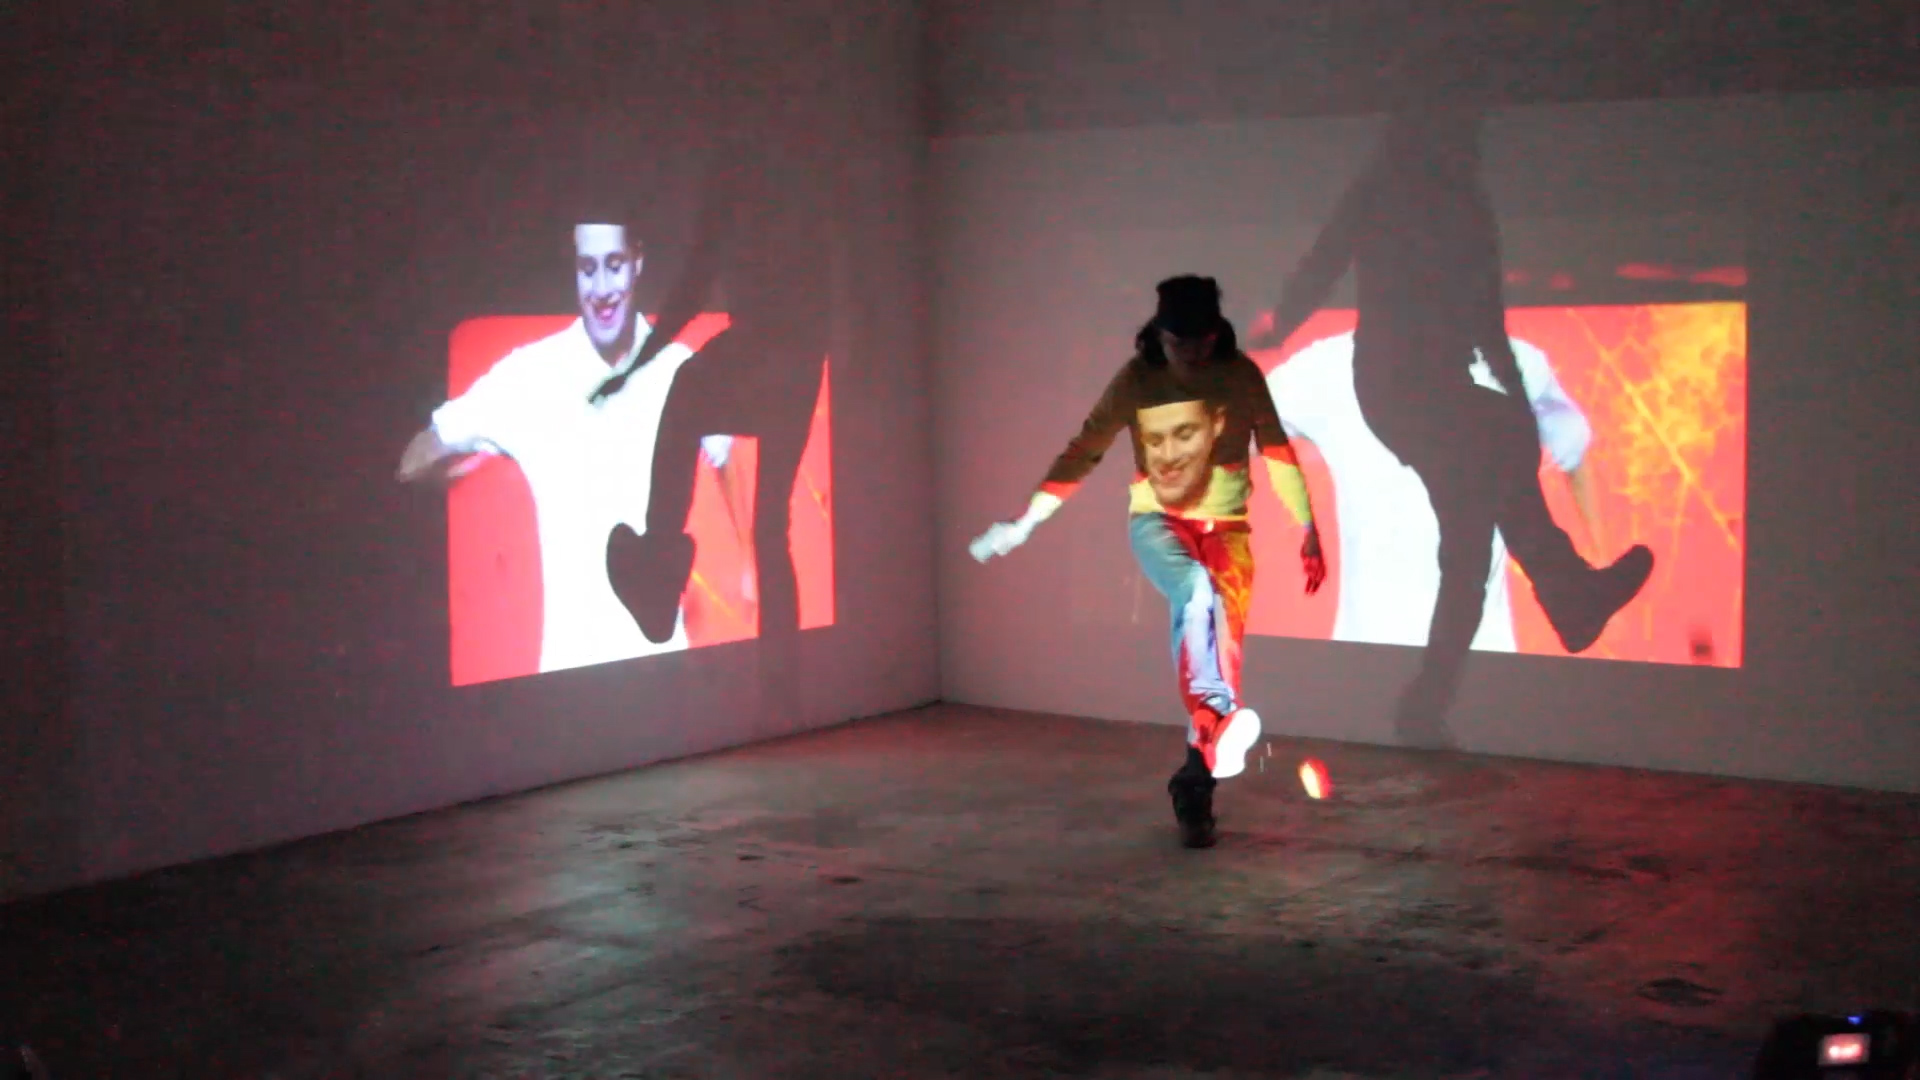 Documentation of performance at LTD Los Angeles